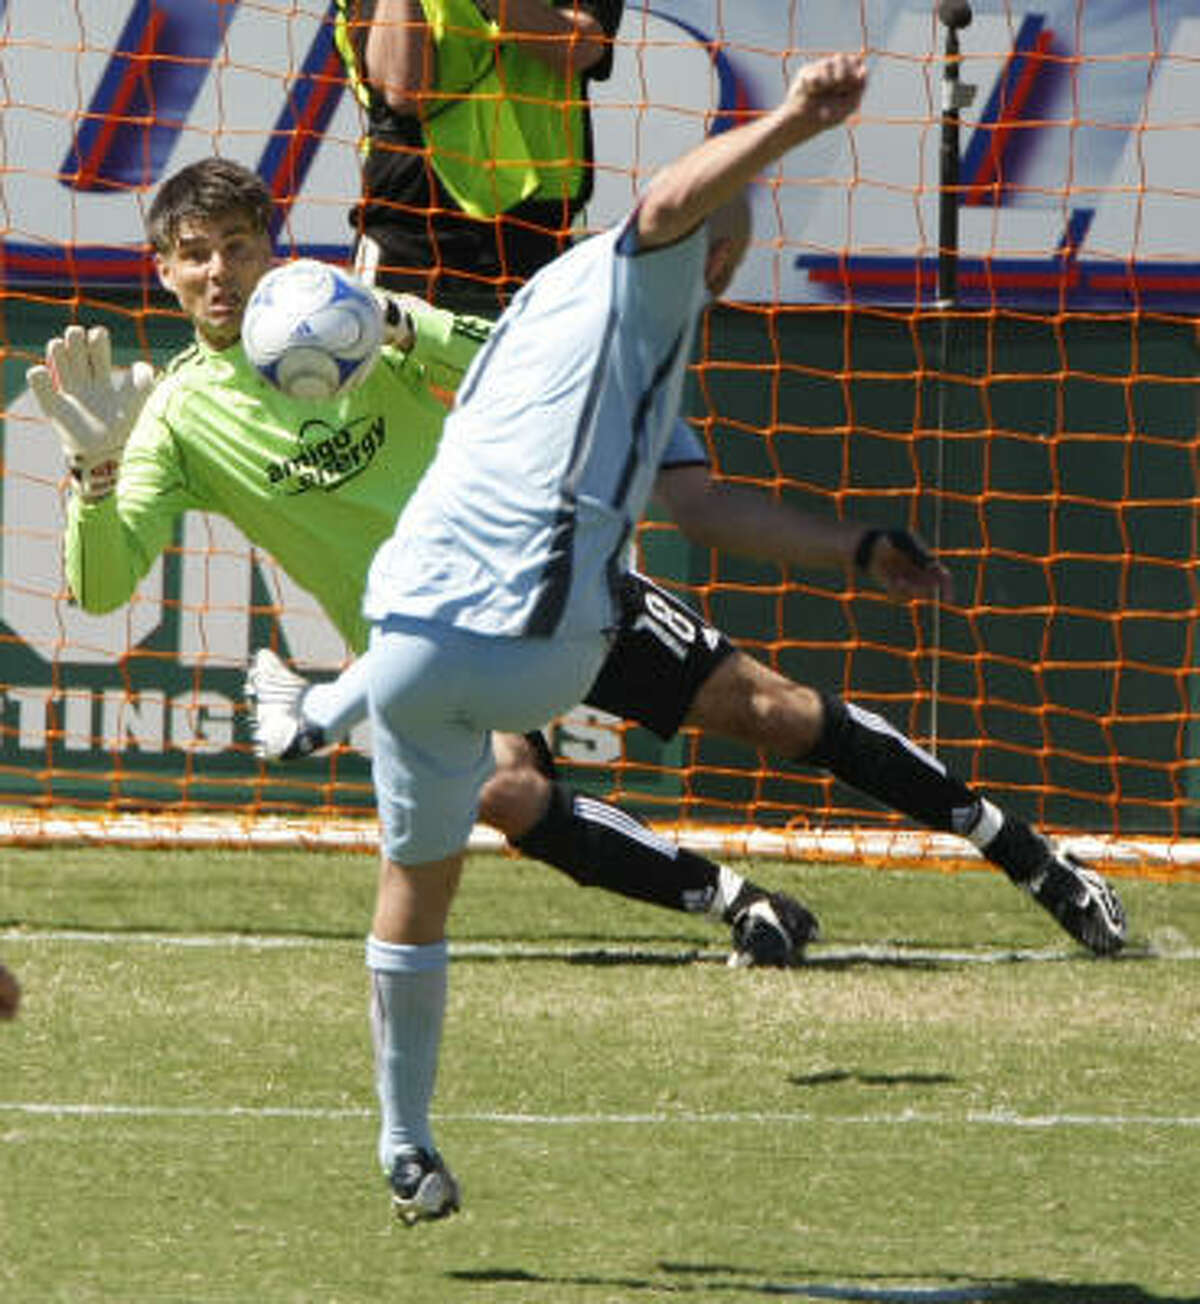 Goalkeeper Pat Onstad protects the Dynamo's 1-0 lead by stopping a penalty kick by the Rapids' Conor Casey.